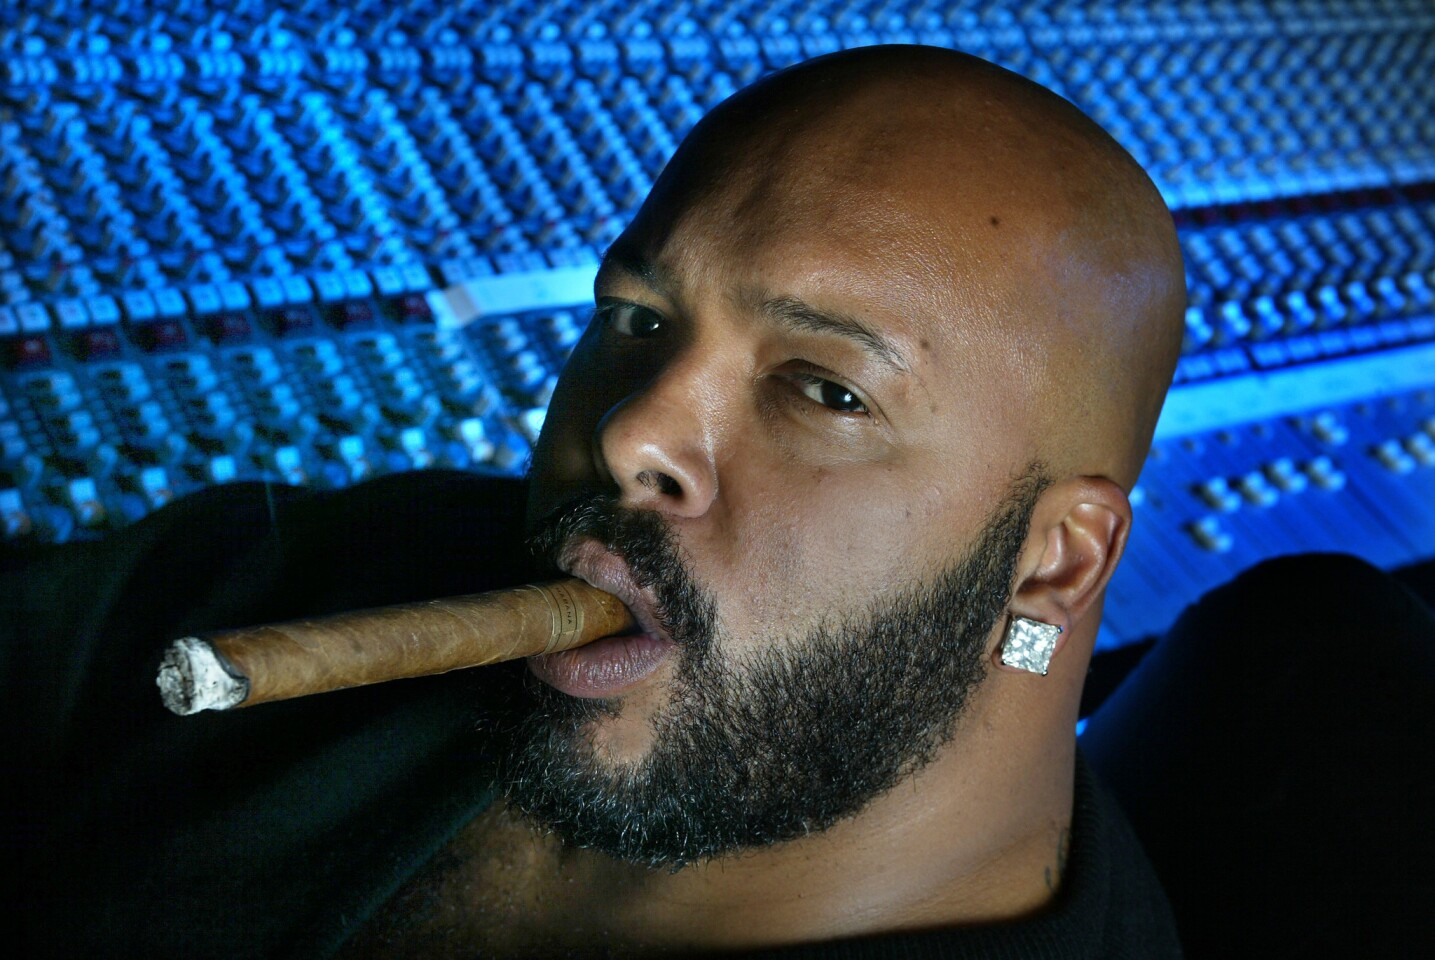 Suge Knight's storied career has been inextricably entwined with legal trouble. A look at the Compton native's life, so far, in pictures.